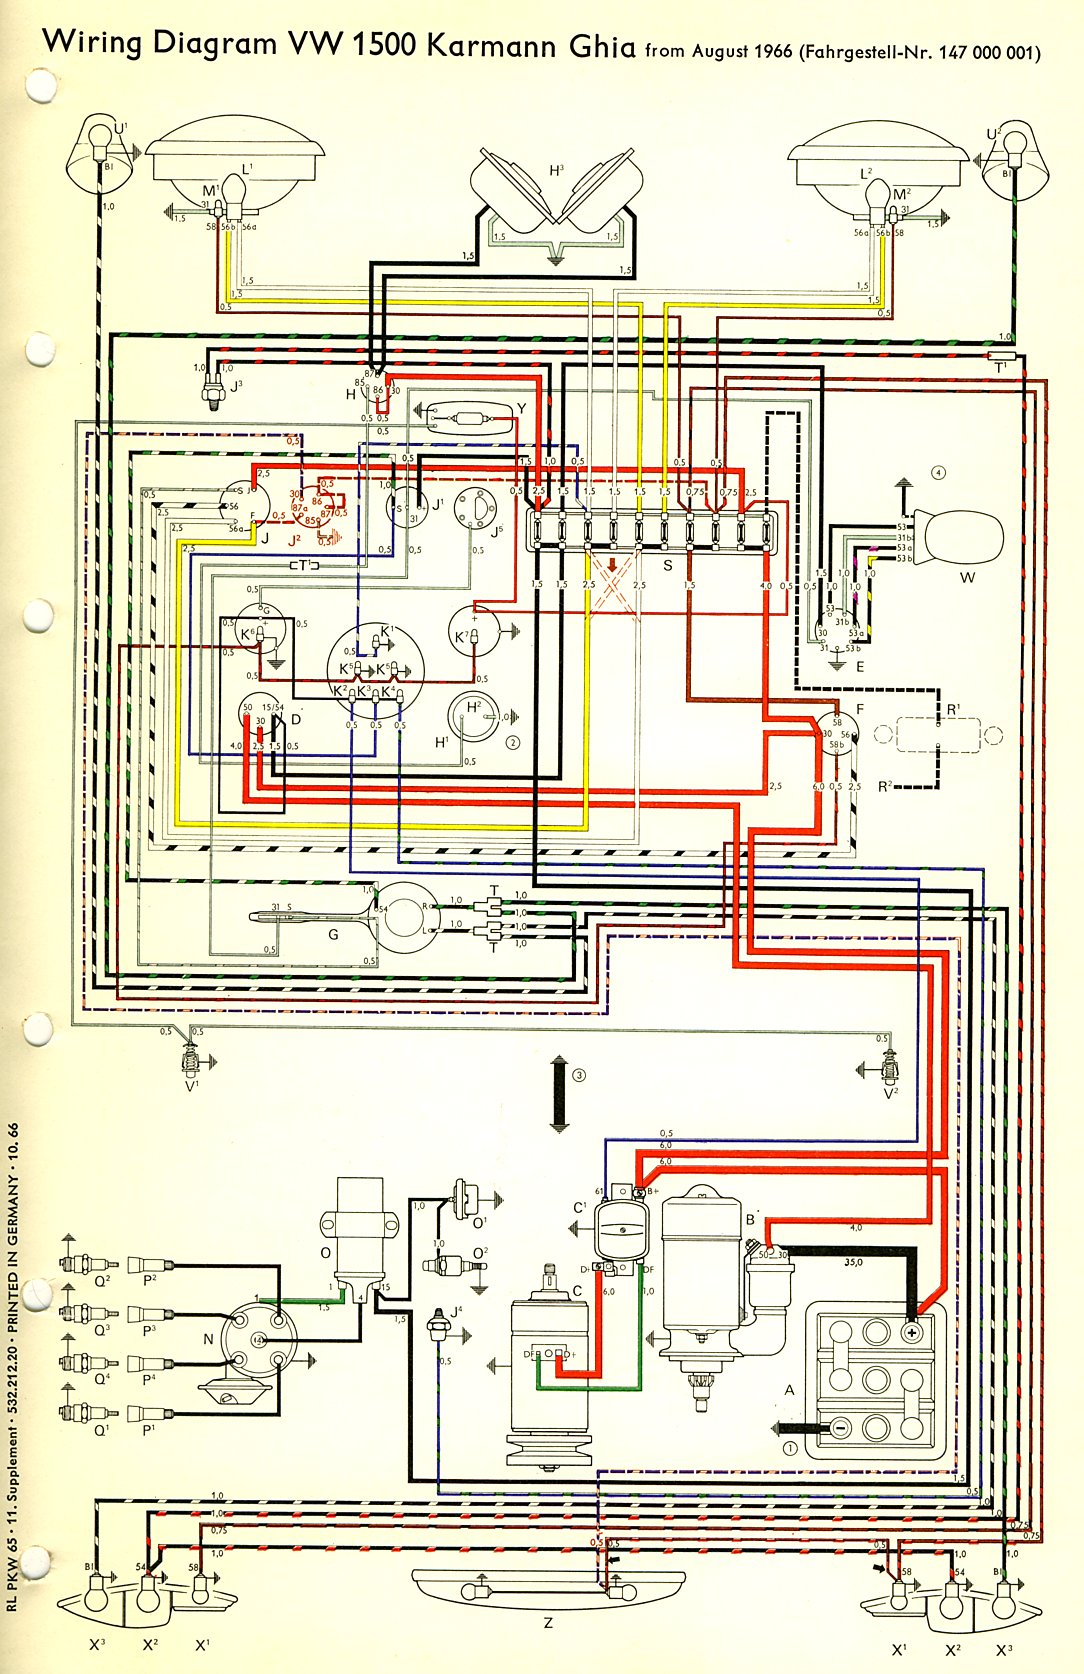 1973 Karmann Ghia Wiring Diagram For A House Symbols Volkswagen Thesamba Com Diagrams Rh Vw Fuse Panel Electrical Drawing